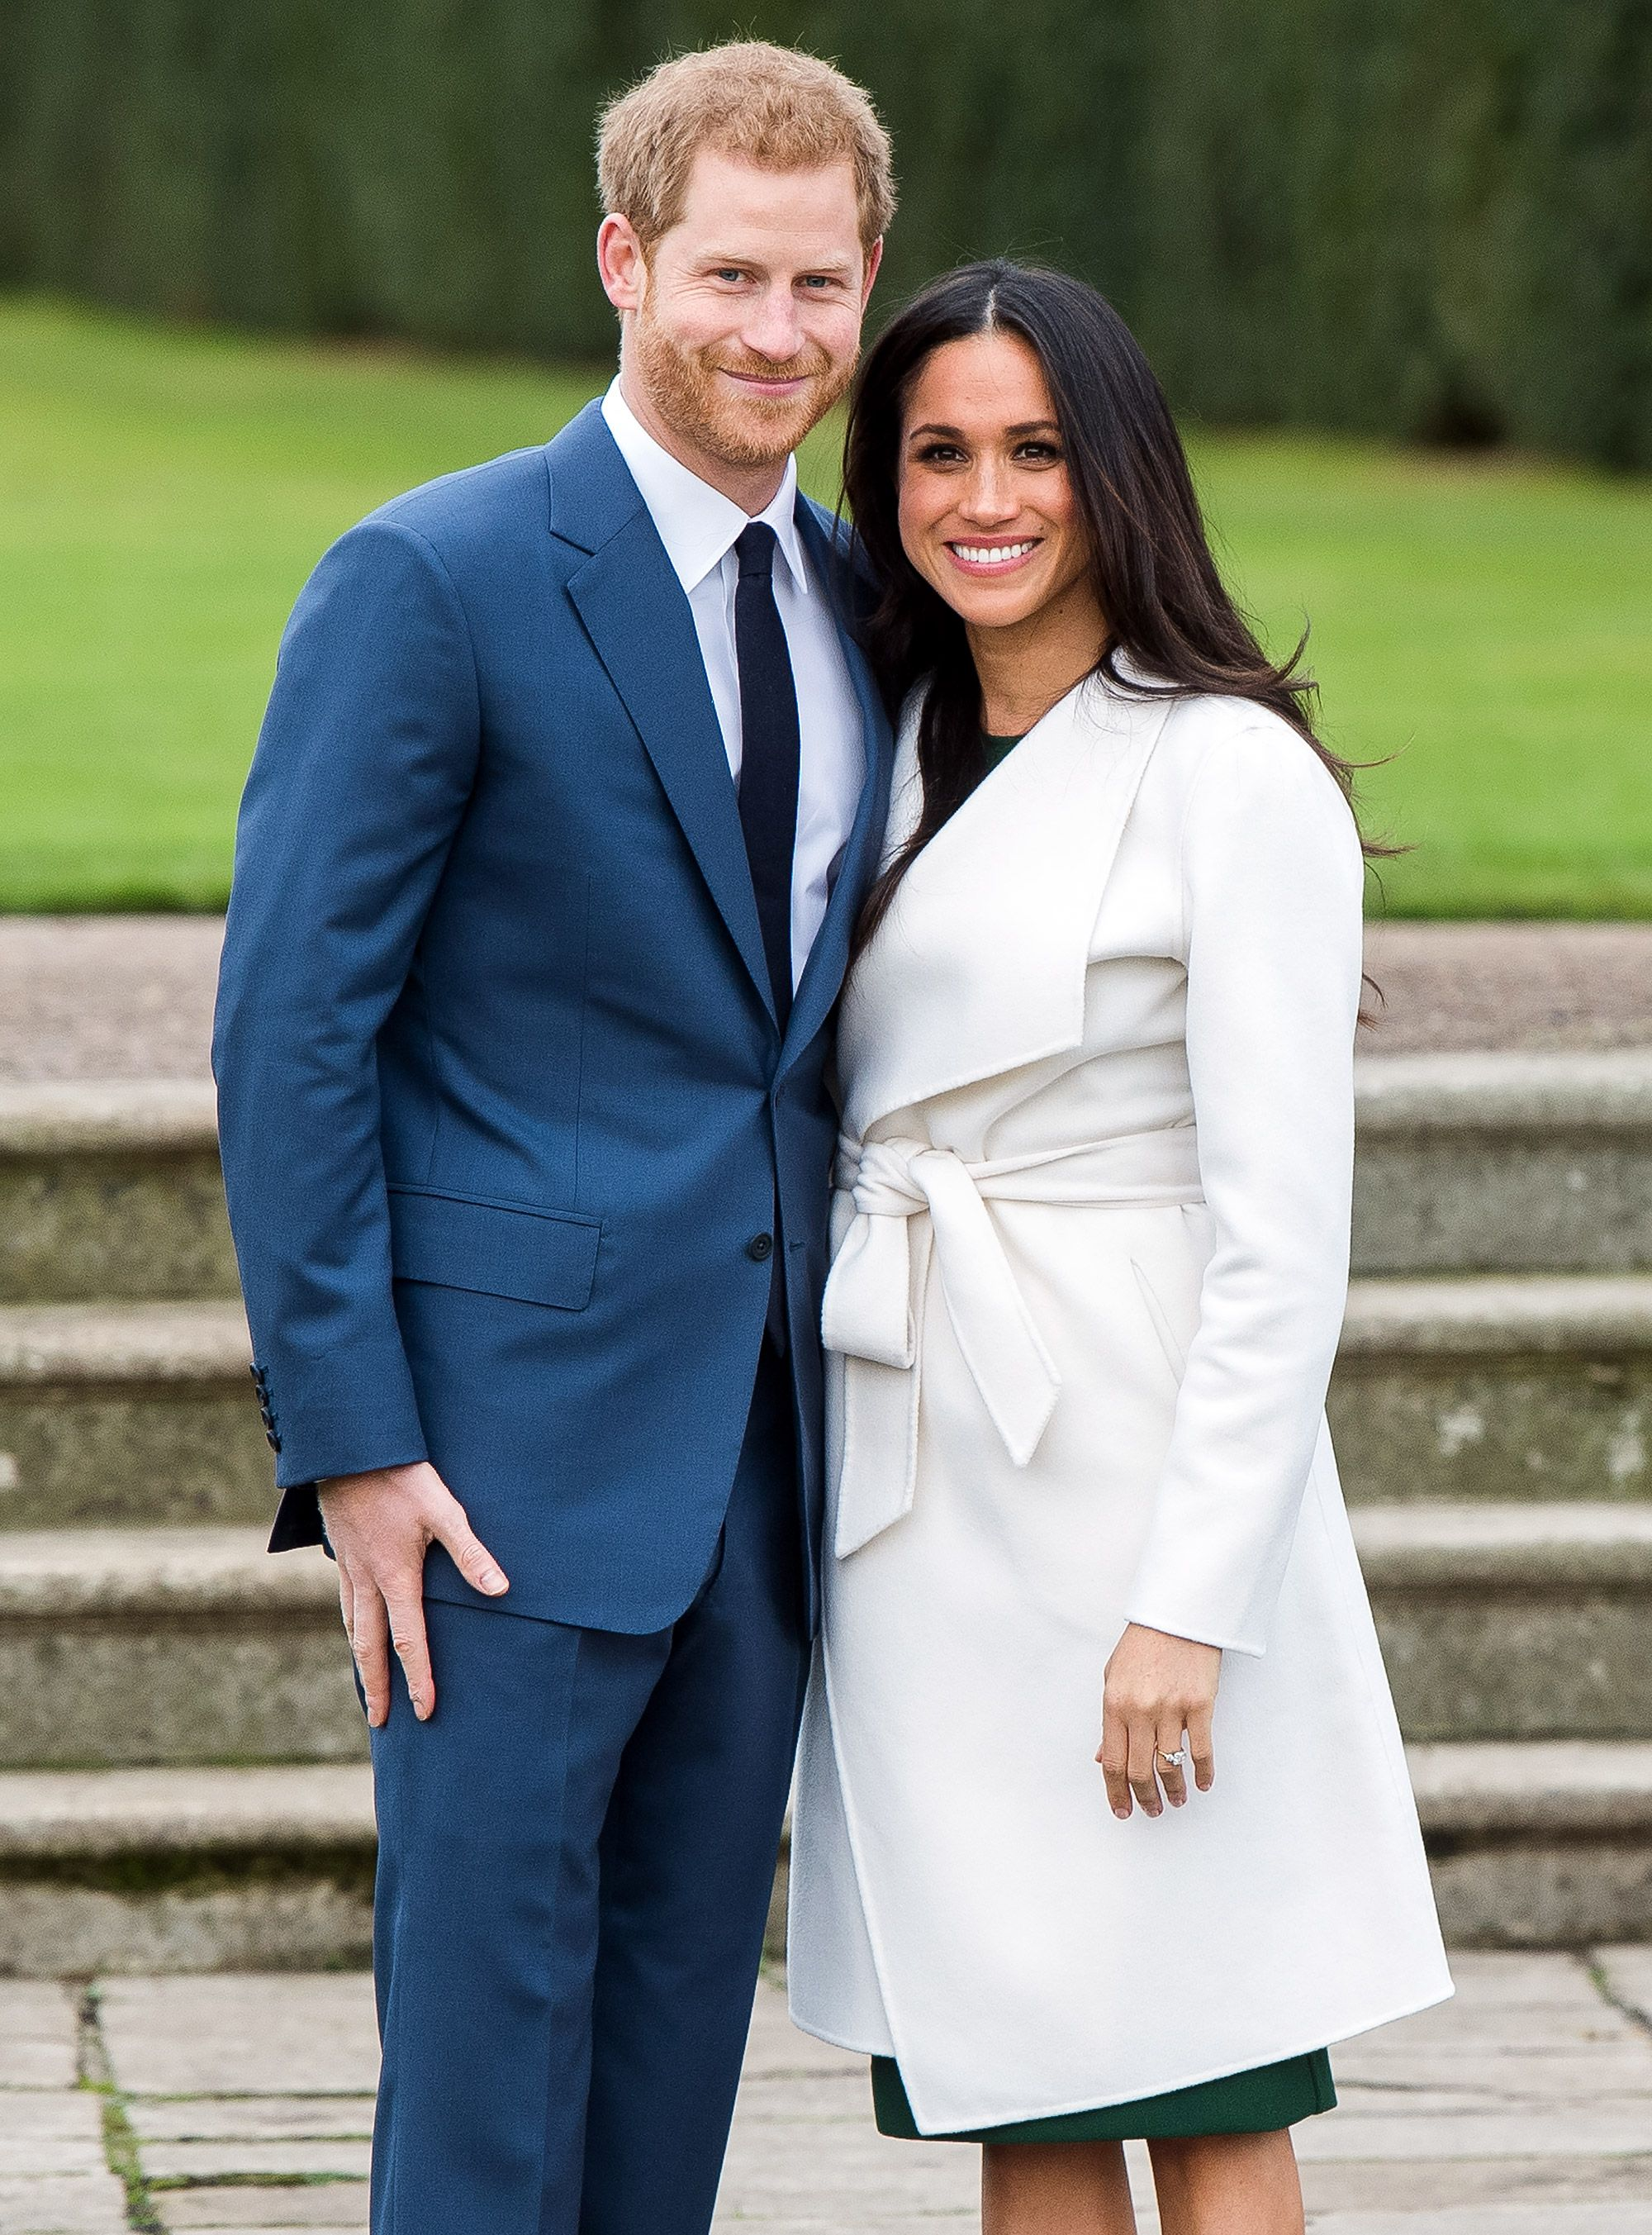 Prince Harry And Meghan Markle S Full Engagement Interview Prince Harry And Meghan Meghan Markle Prince Harry Prince Harry